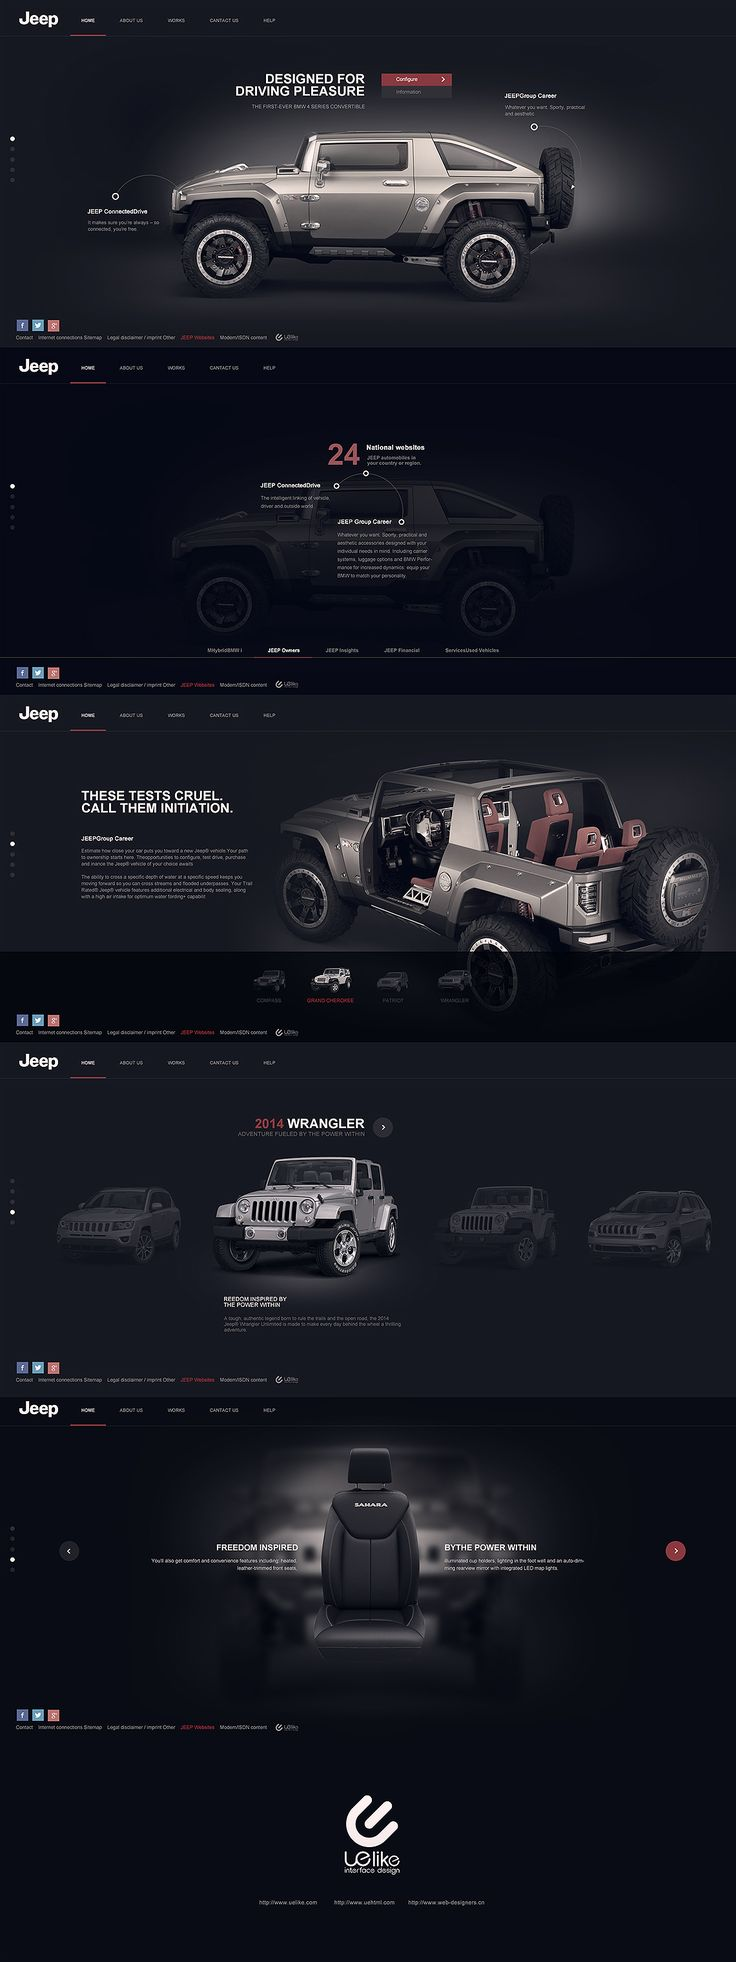 http://dribbble.com/shots/1396986-web-design/attachments/202491